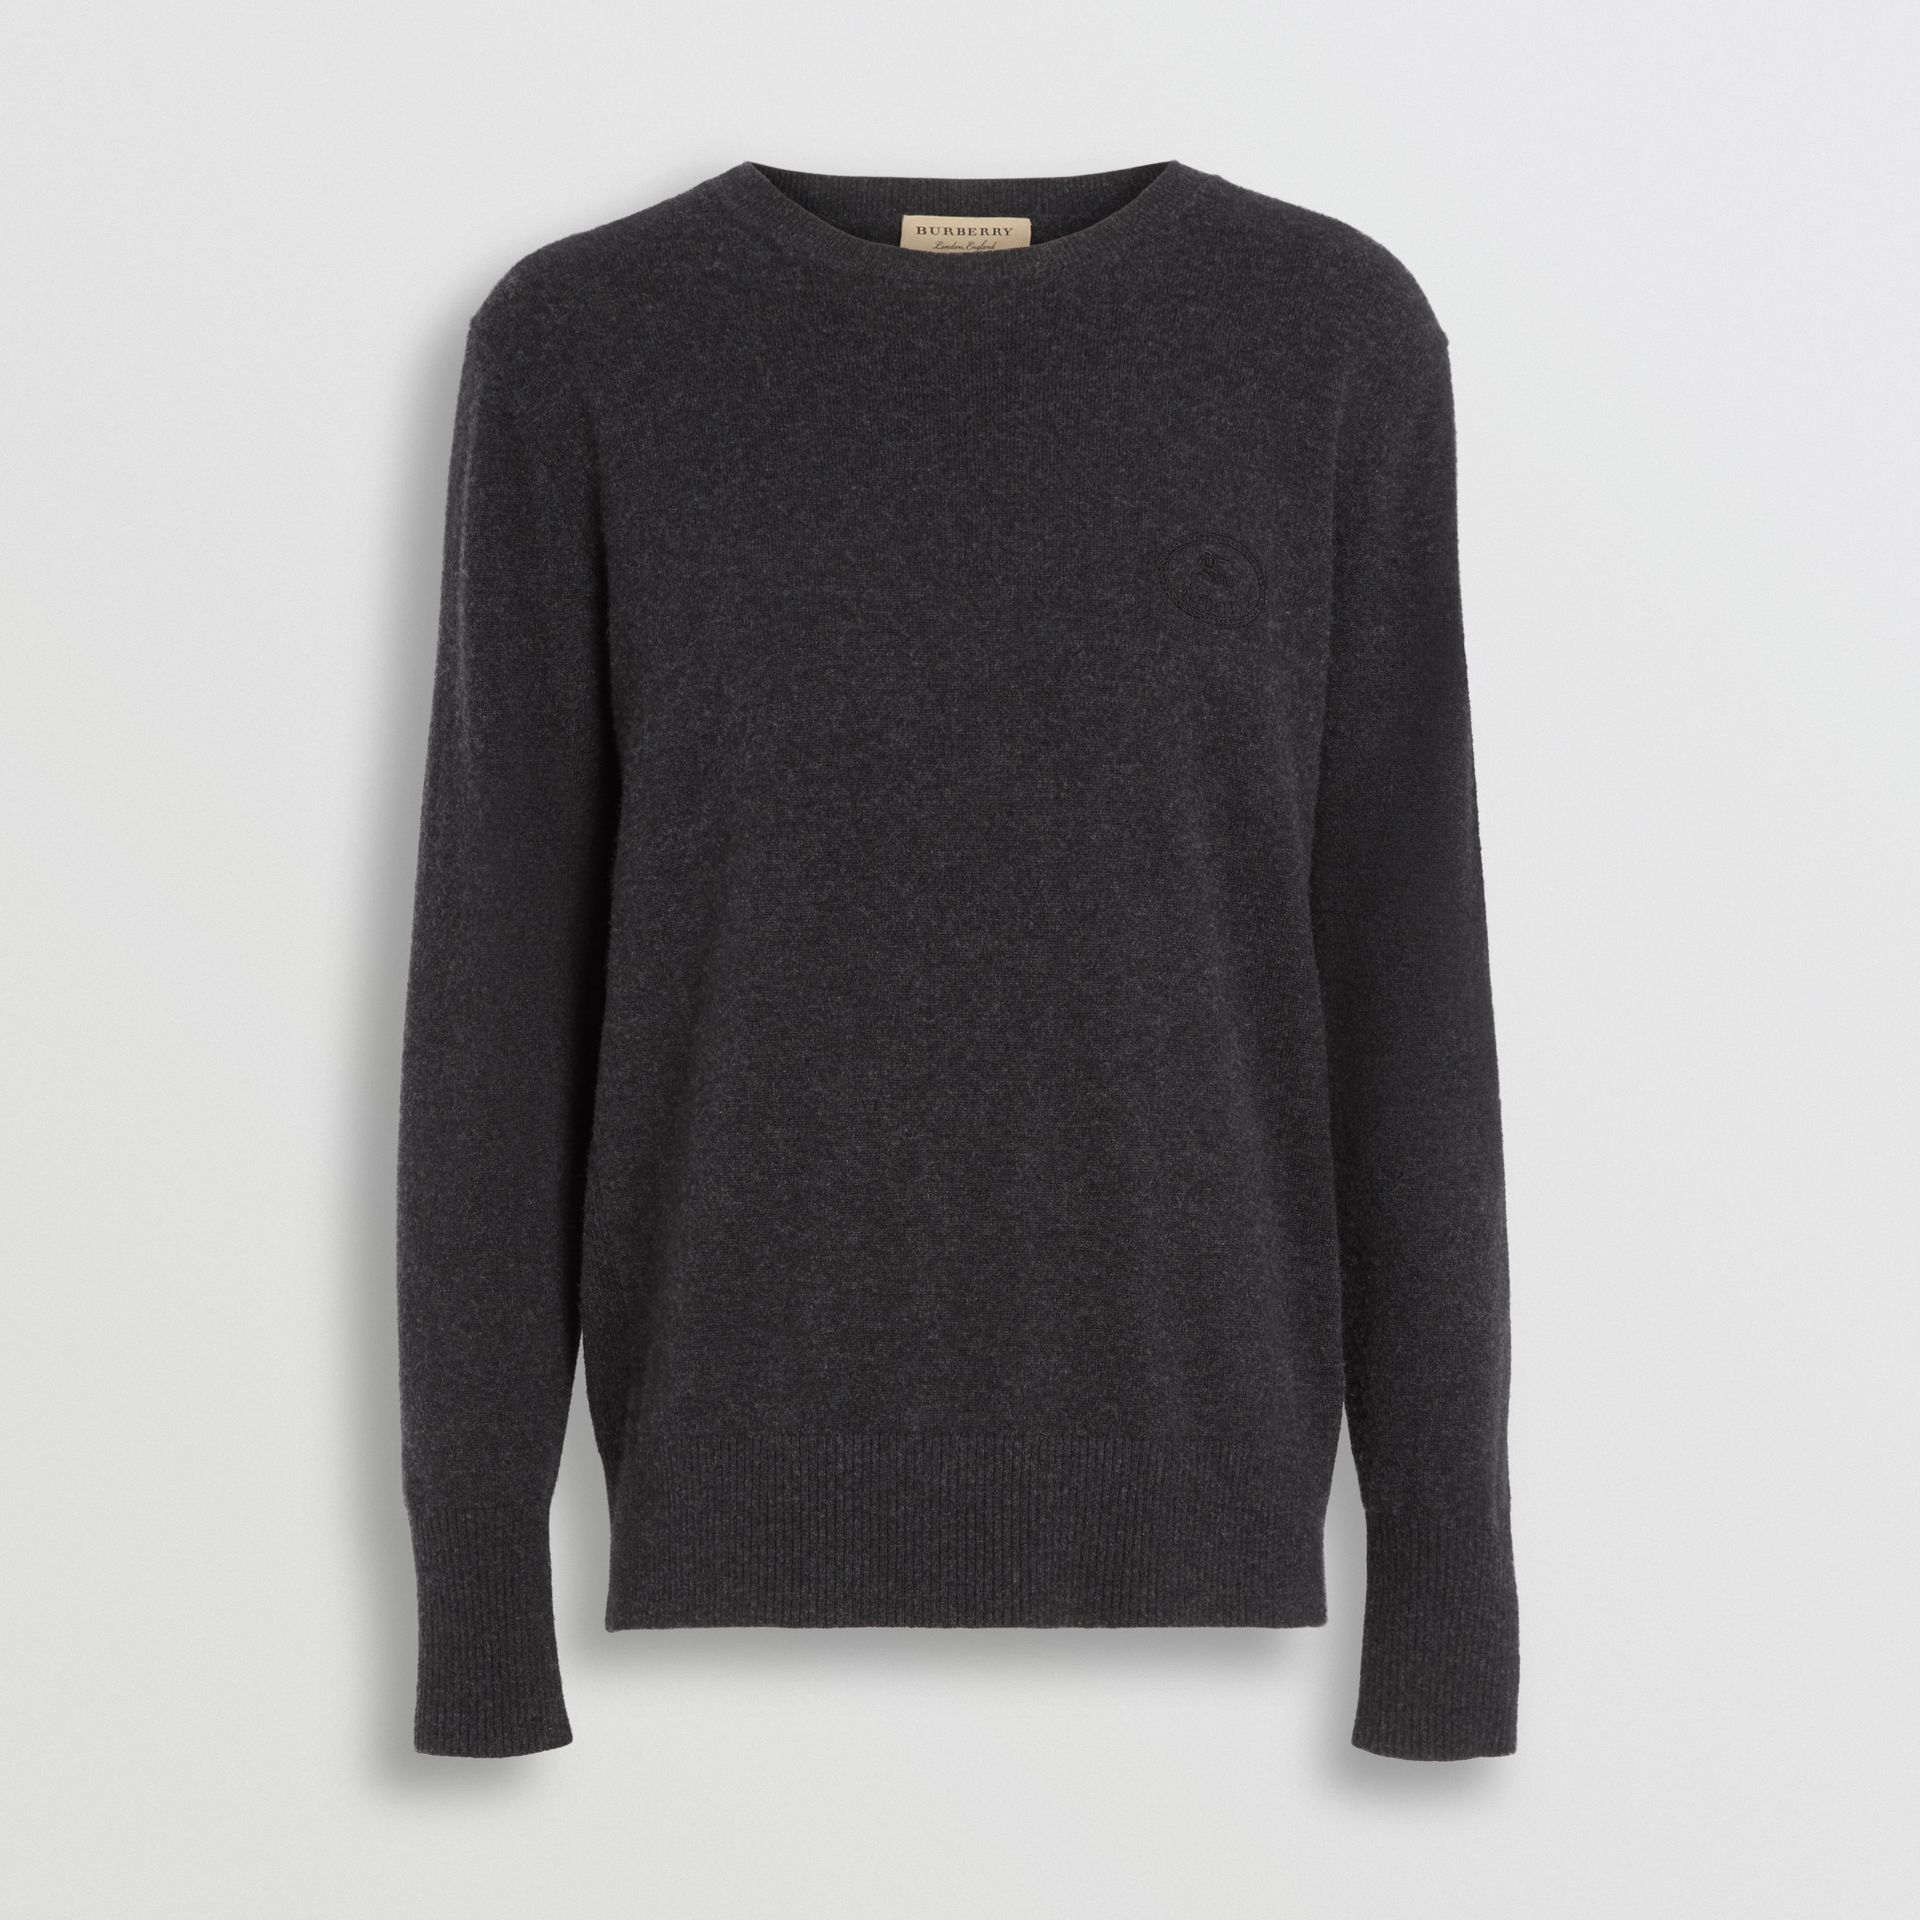 Embroidered Archive Logo Cashmere Sweater in Charcoal Melange - Men | Burberry United Kingdom - gallery image 3